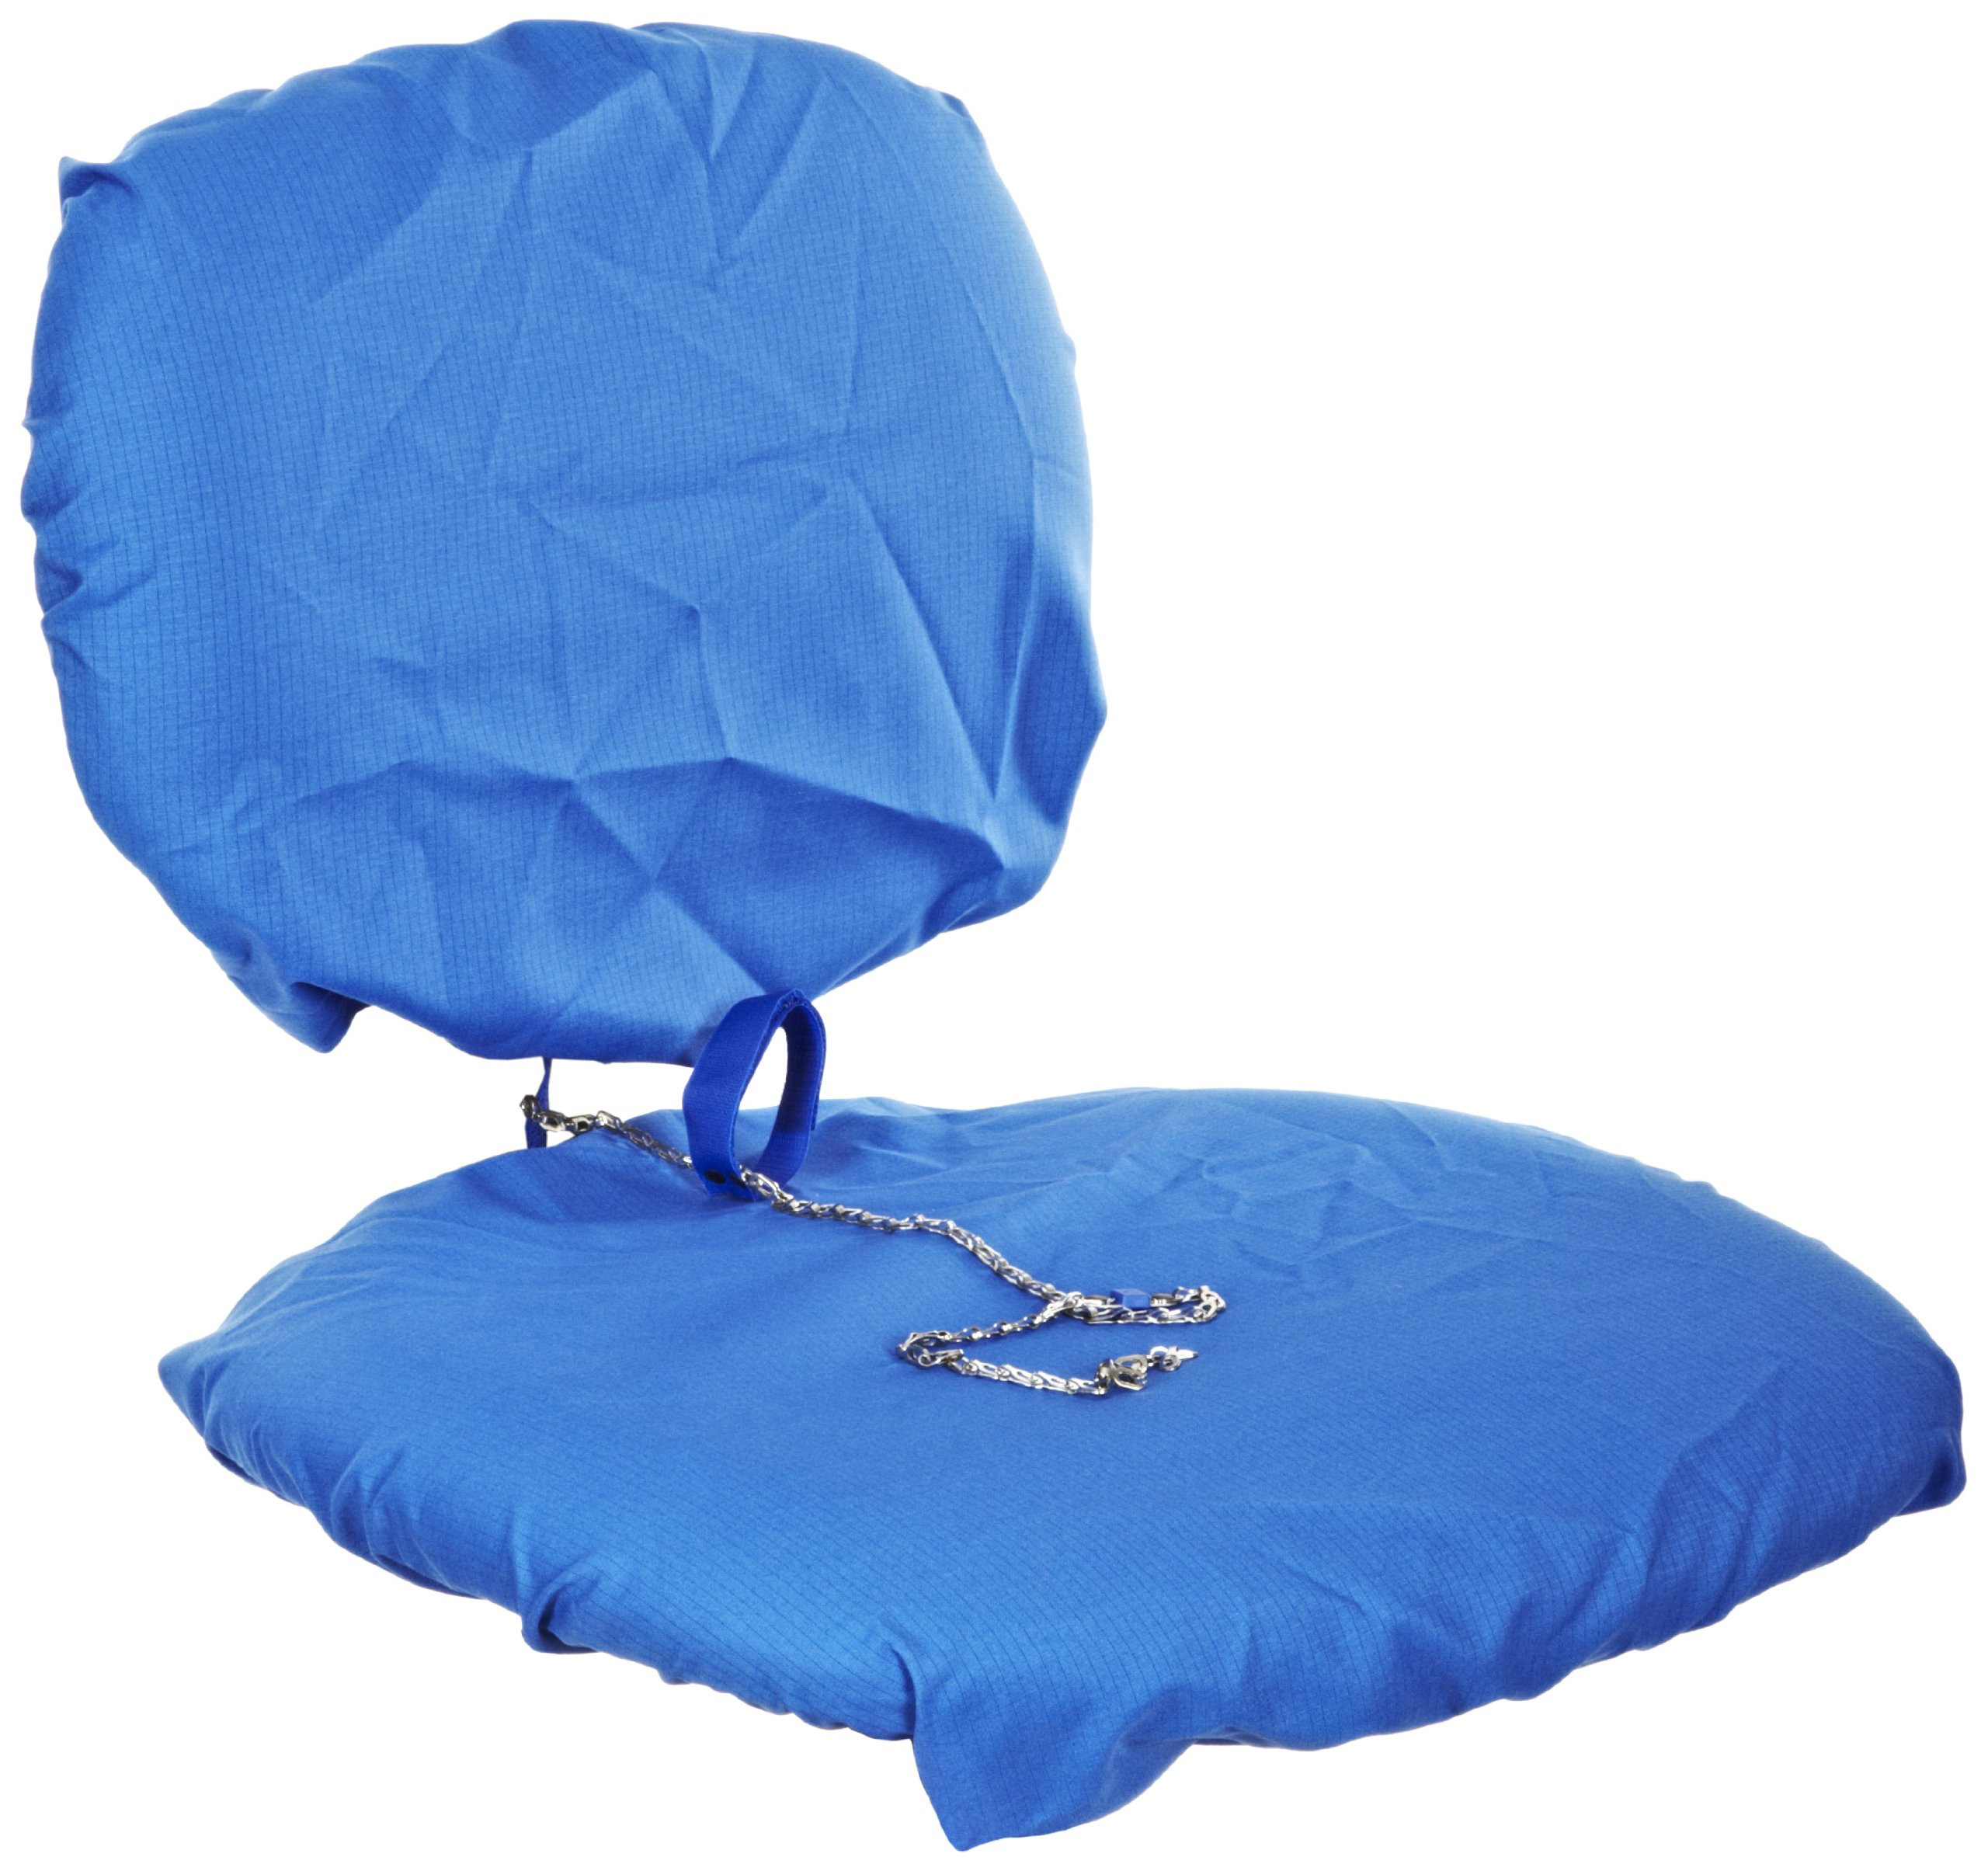 DESCO 7200 Polyester/Cotton Statshield Blend Dissipative Chair Cover